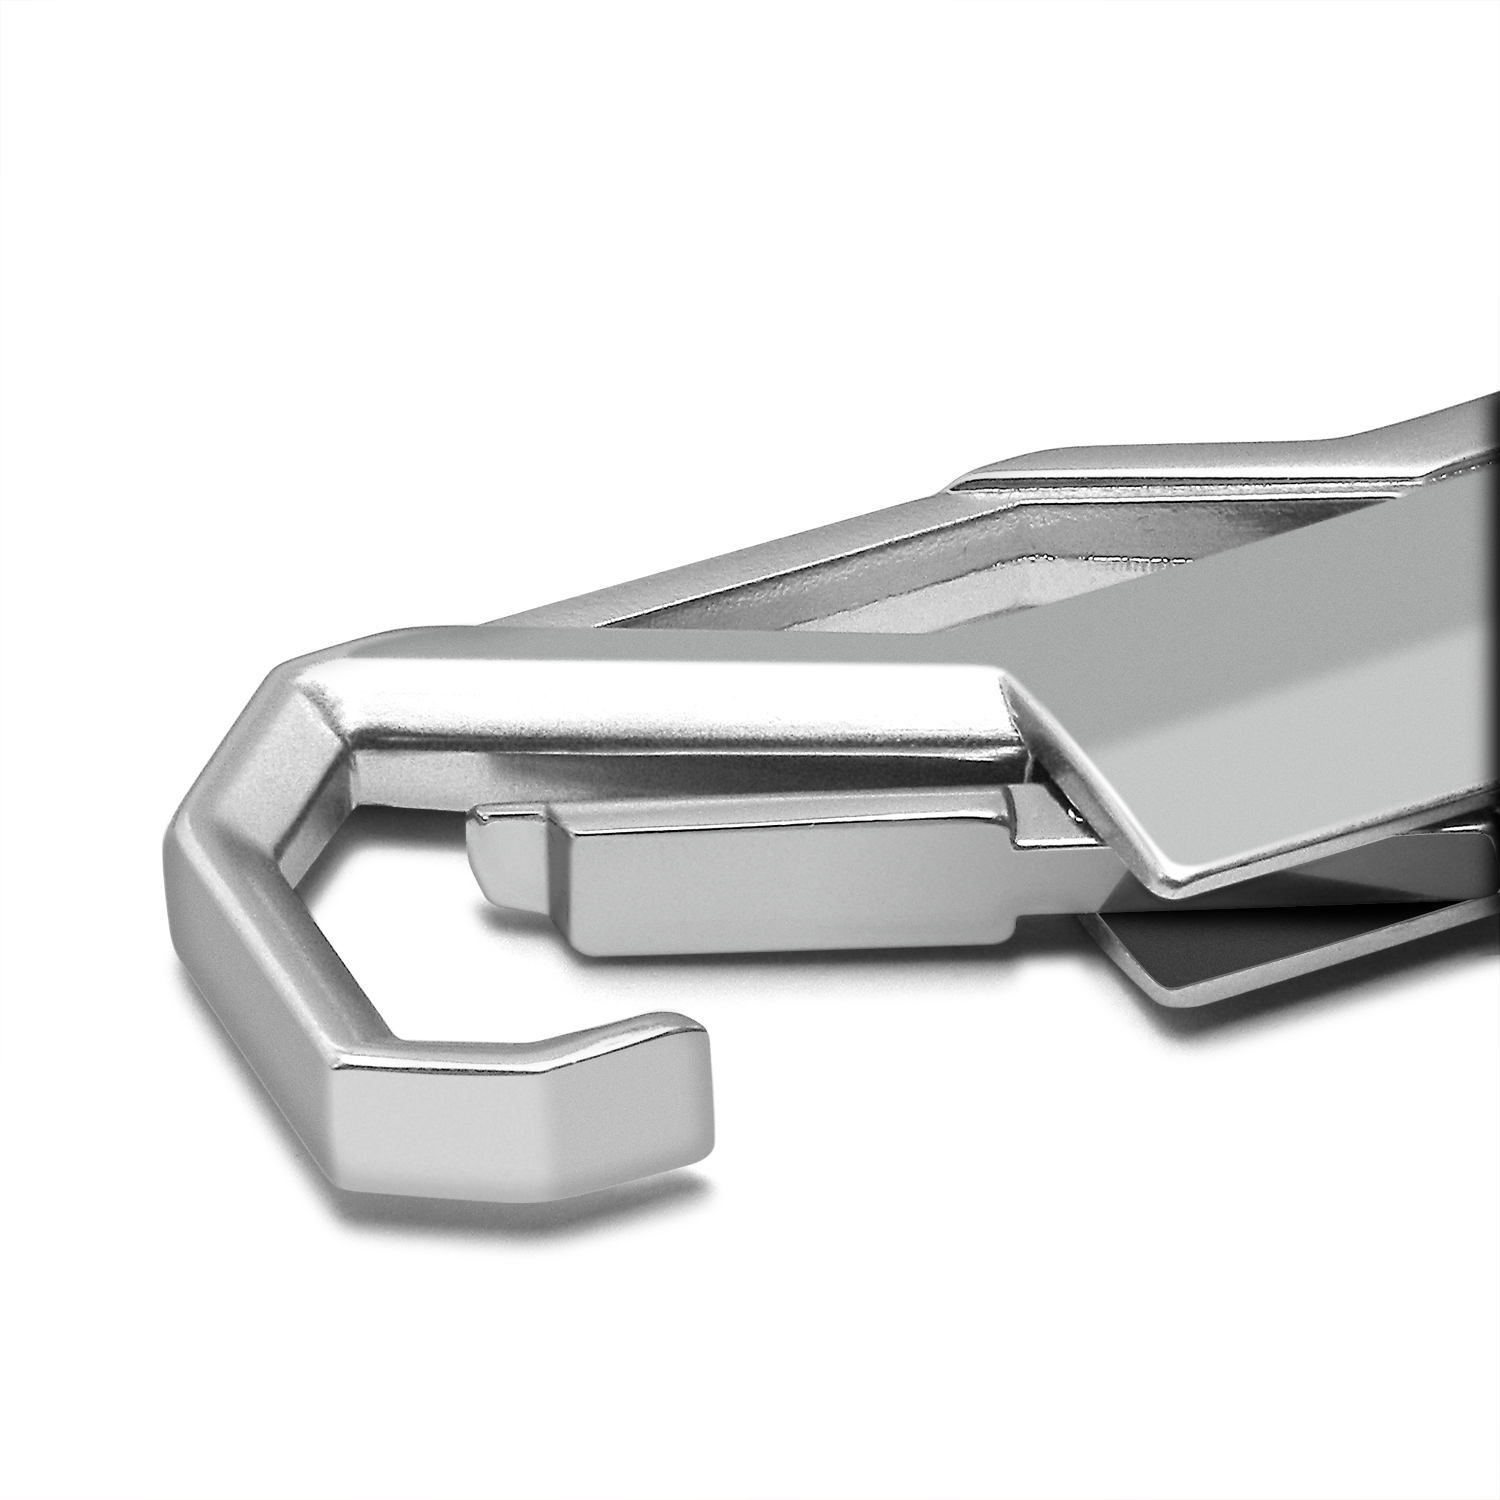 Jeep Silver Carabiner-Style Snap Hook Metal Key Chain iPick Image for